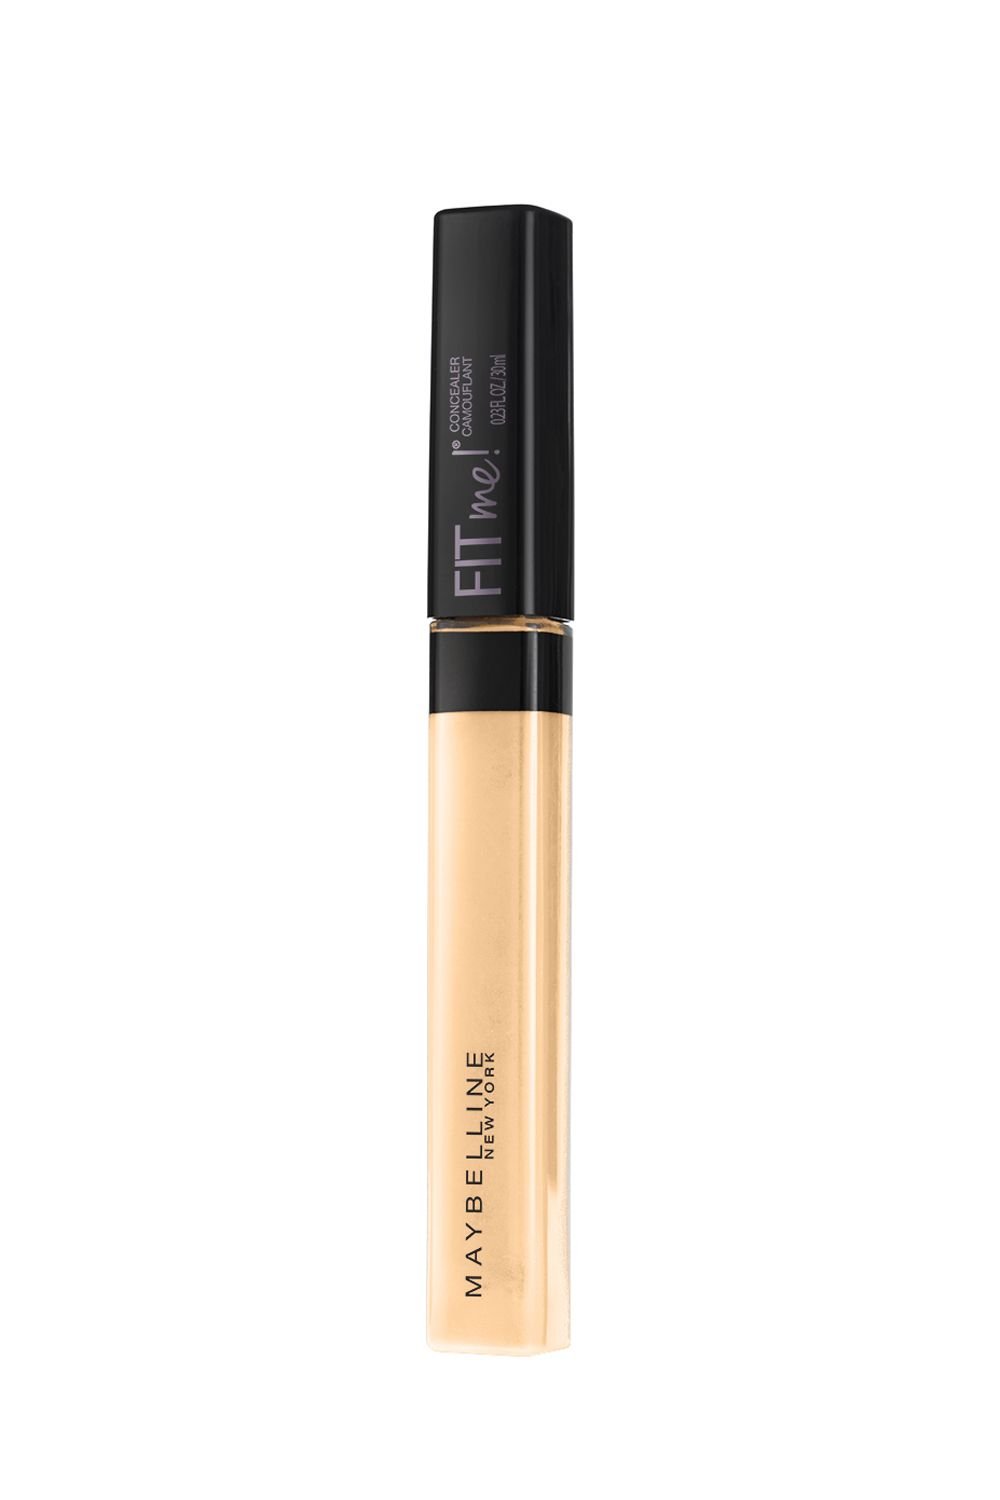 Full-coverage, yet surprisingly hydrating, this no-crease concealer is almost an exact dupe for the iconic Nars Radiant Creamy Concealer, at half the price. Maybelline Fit Me Concealer, $6.99 BUY IT:ulta.com.